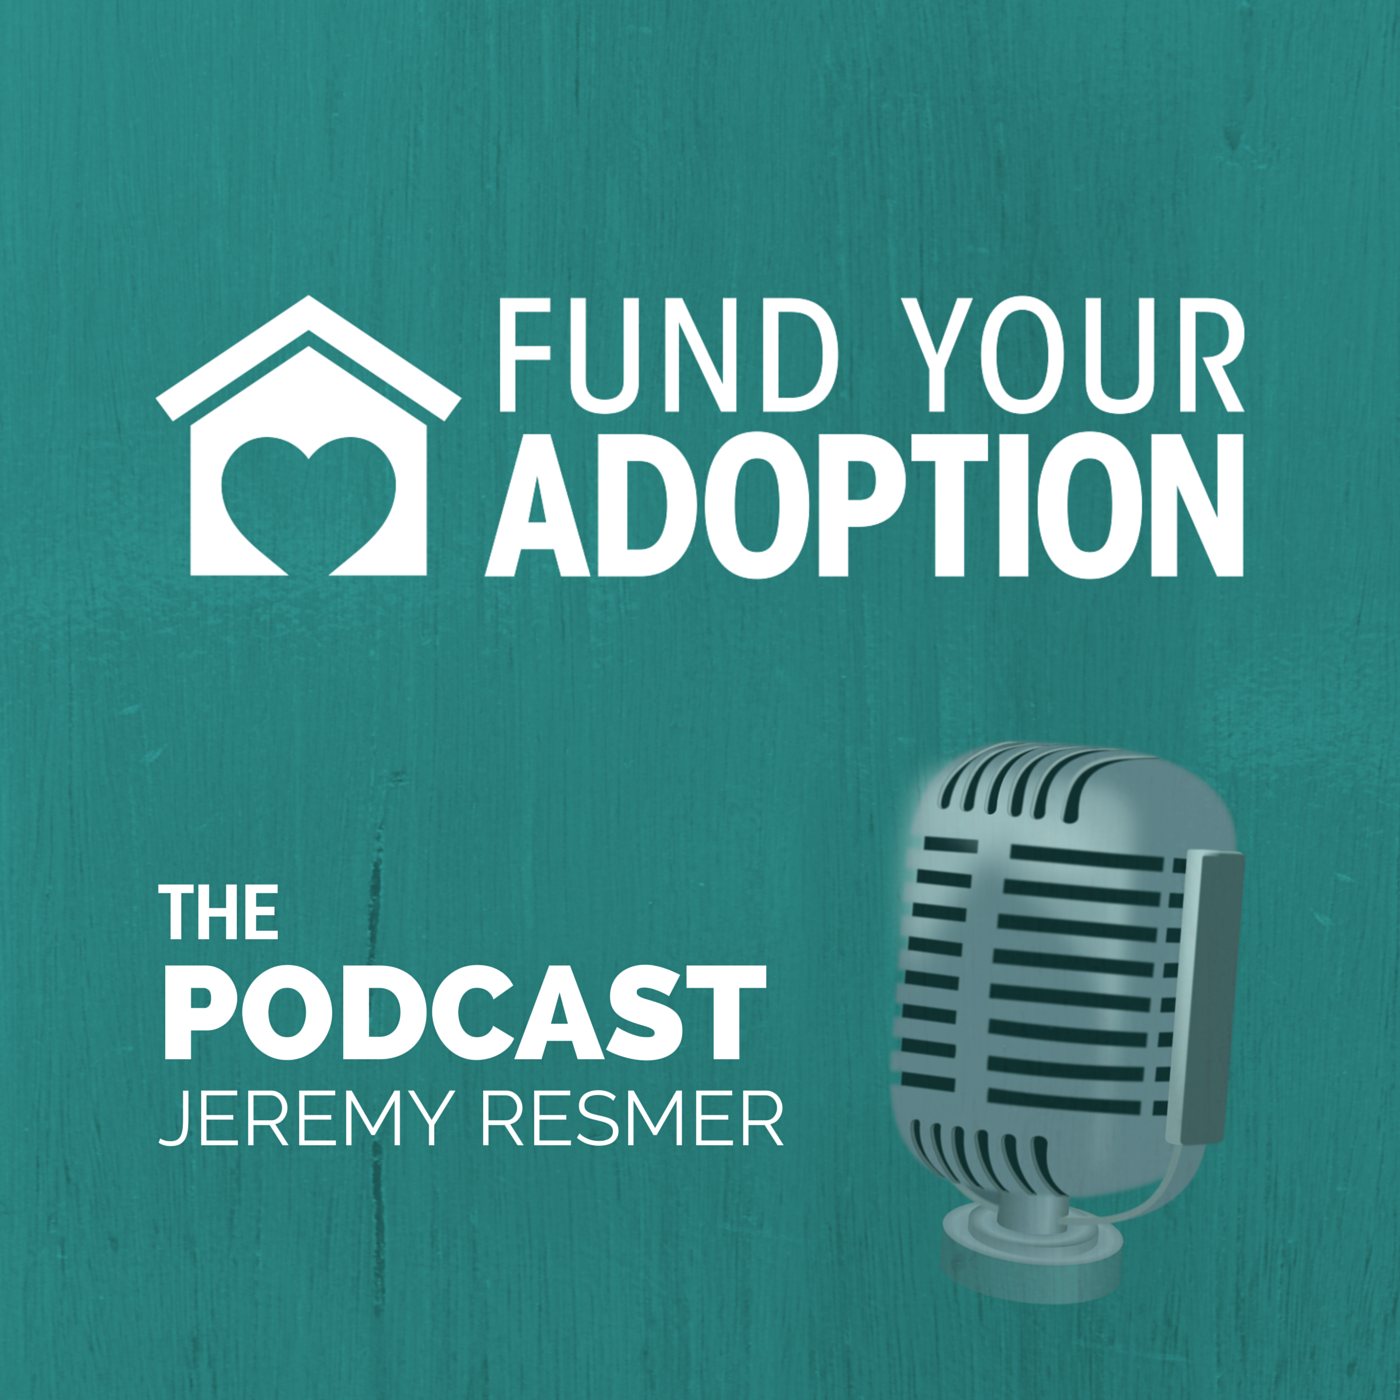 fund your adoption podcast